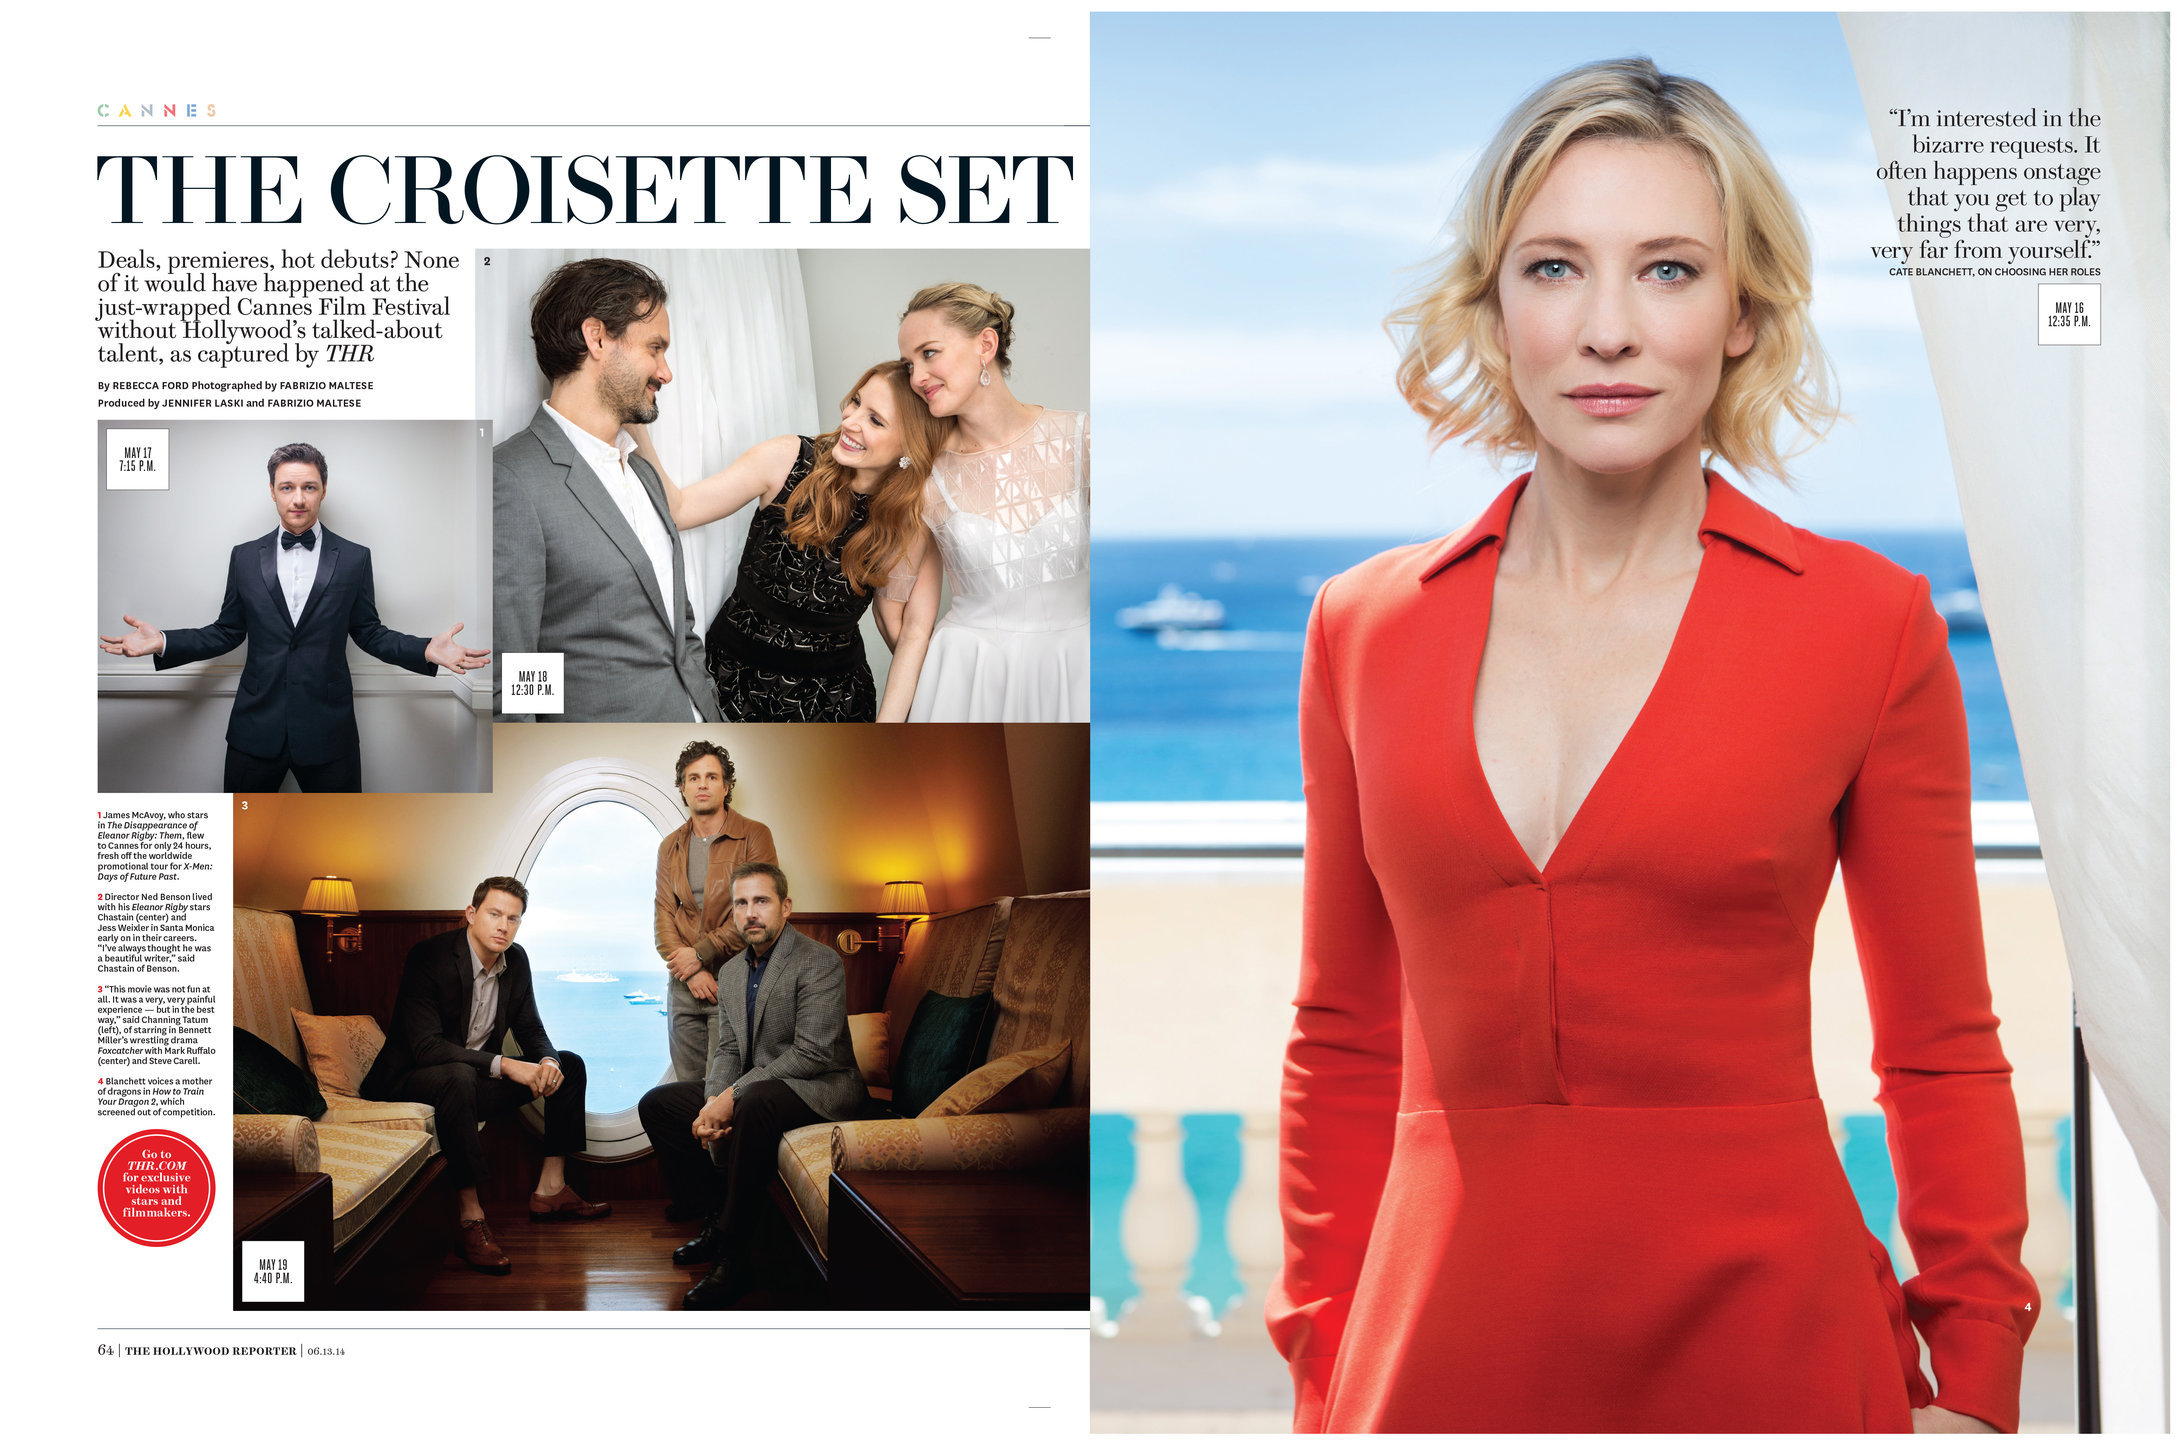 THR weekly cannes 1.jpg